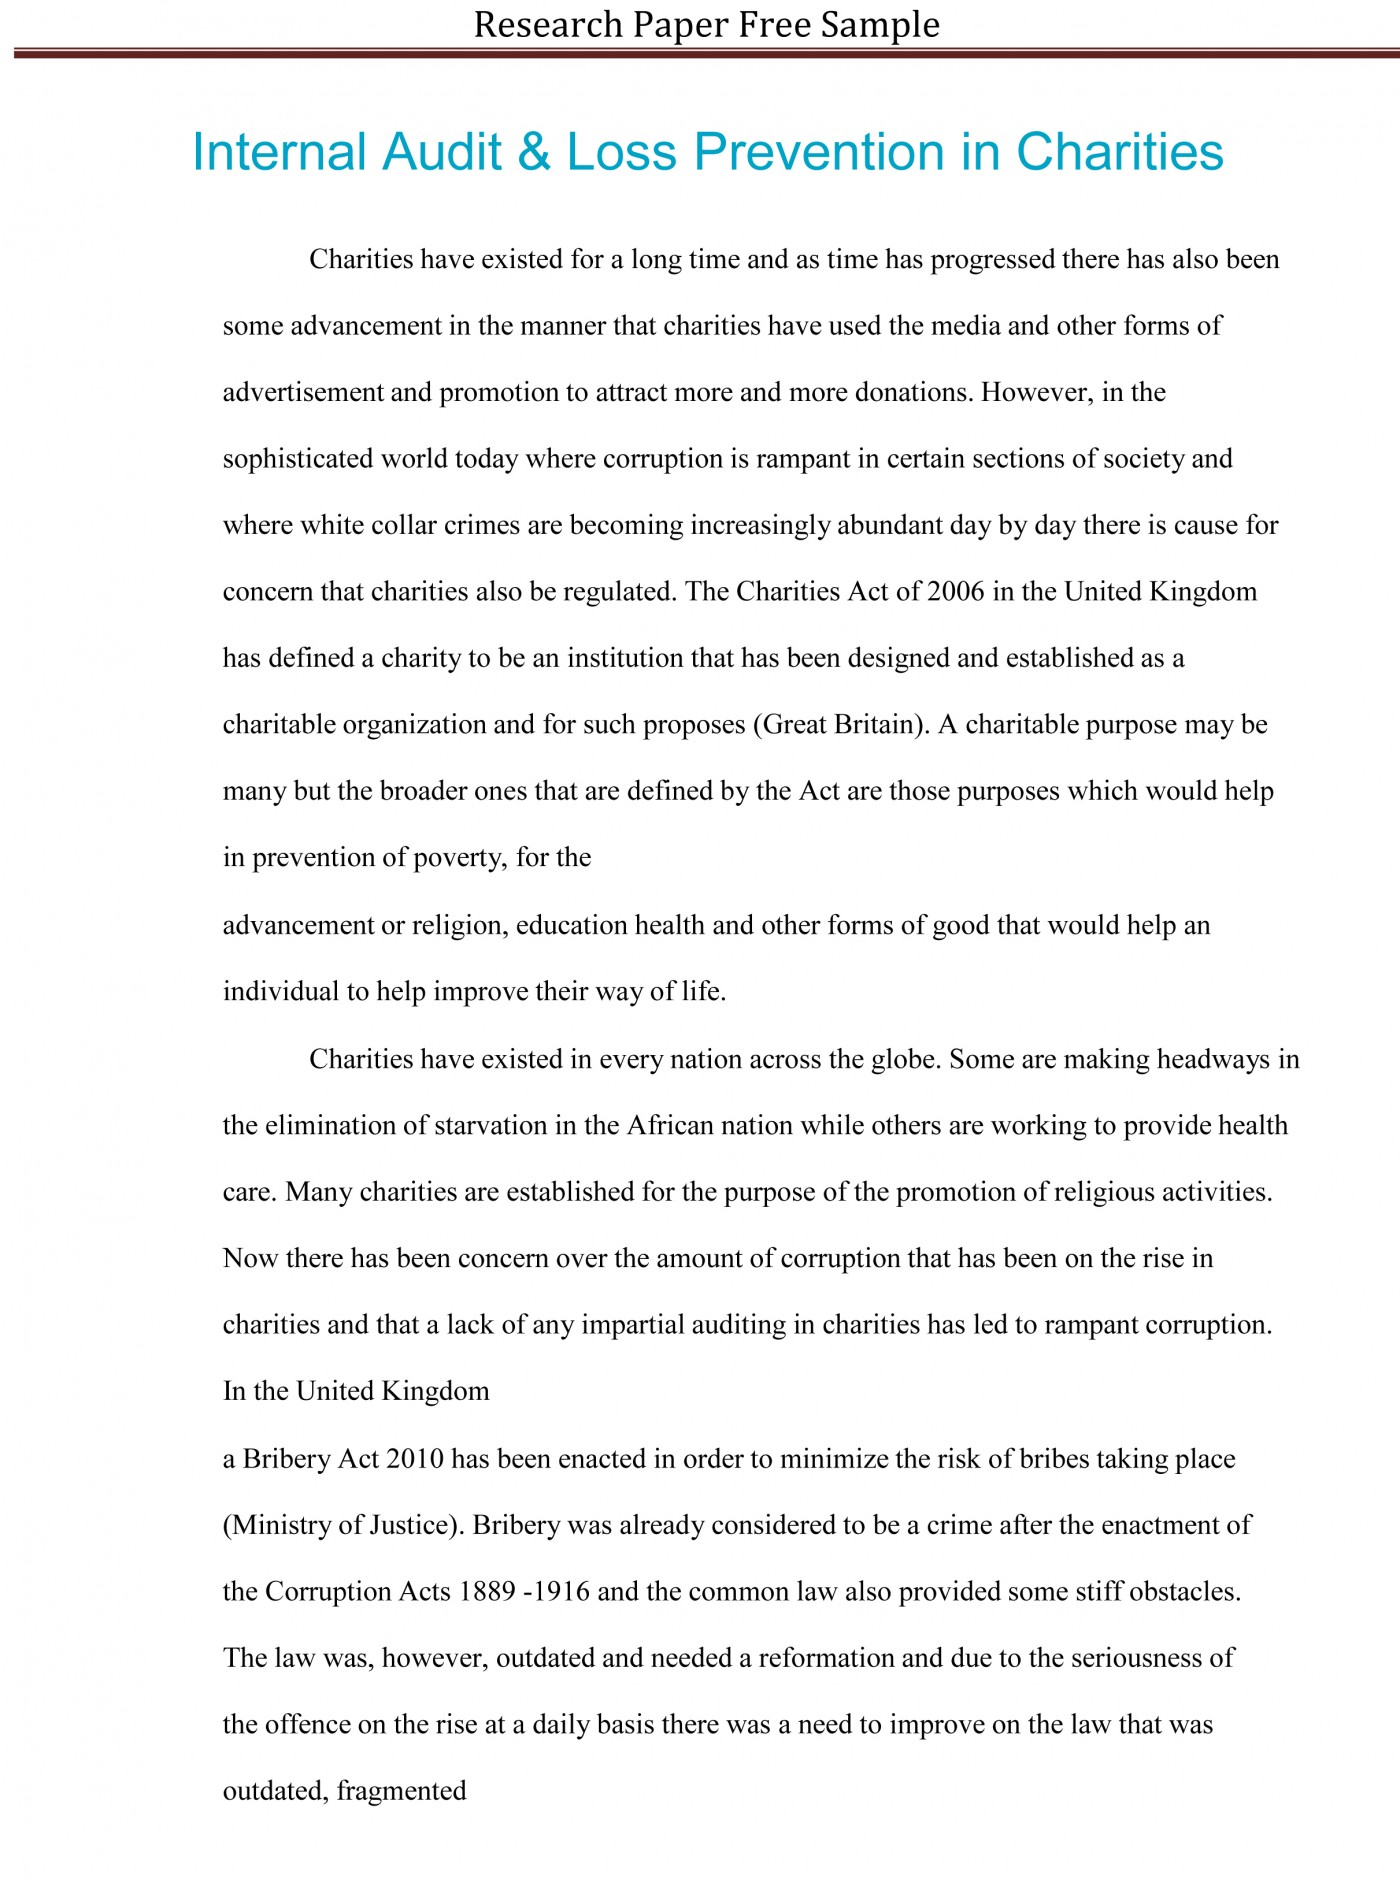 014 Example Of Introduction In Research Paper Help Writing Paragraph Unique About Business Bullying Cyberbullying 1400